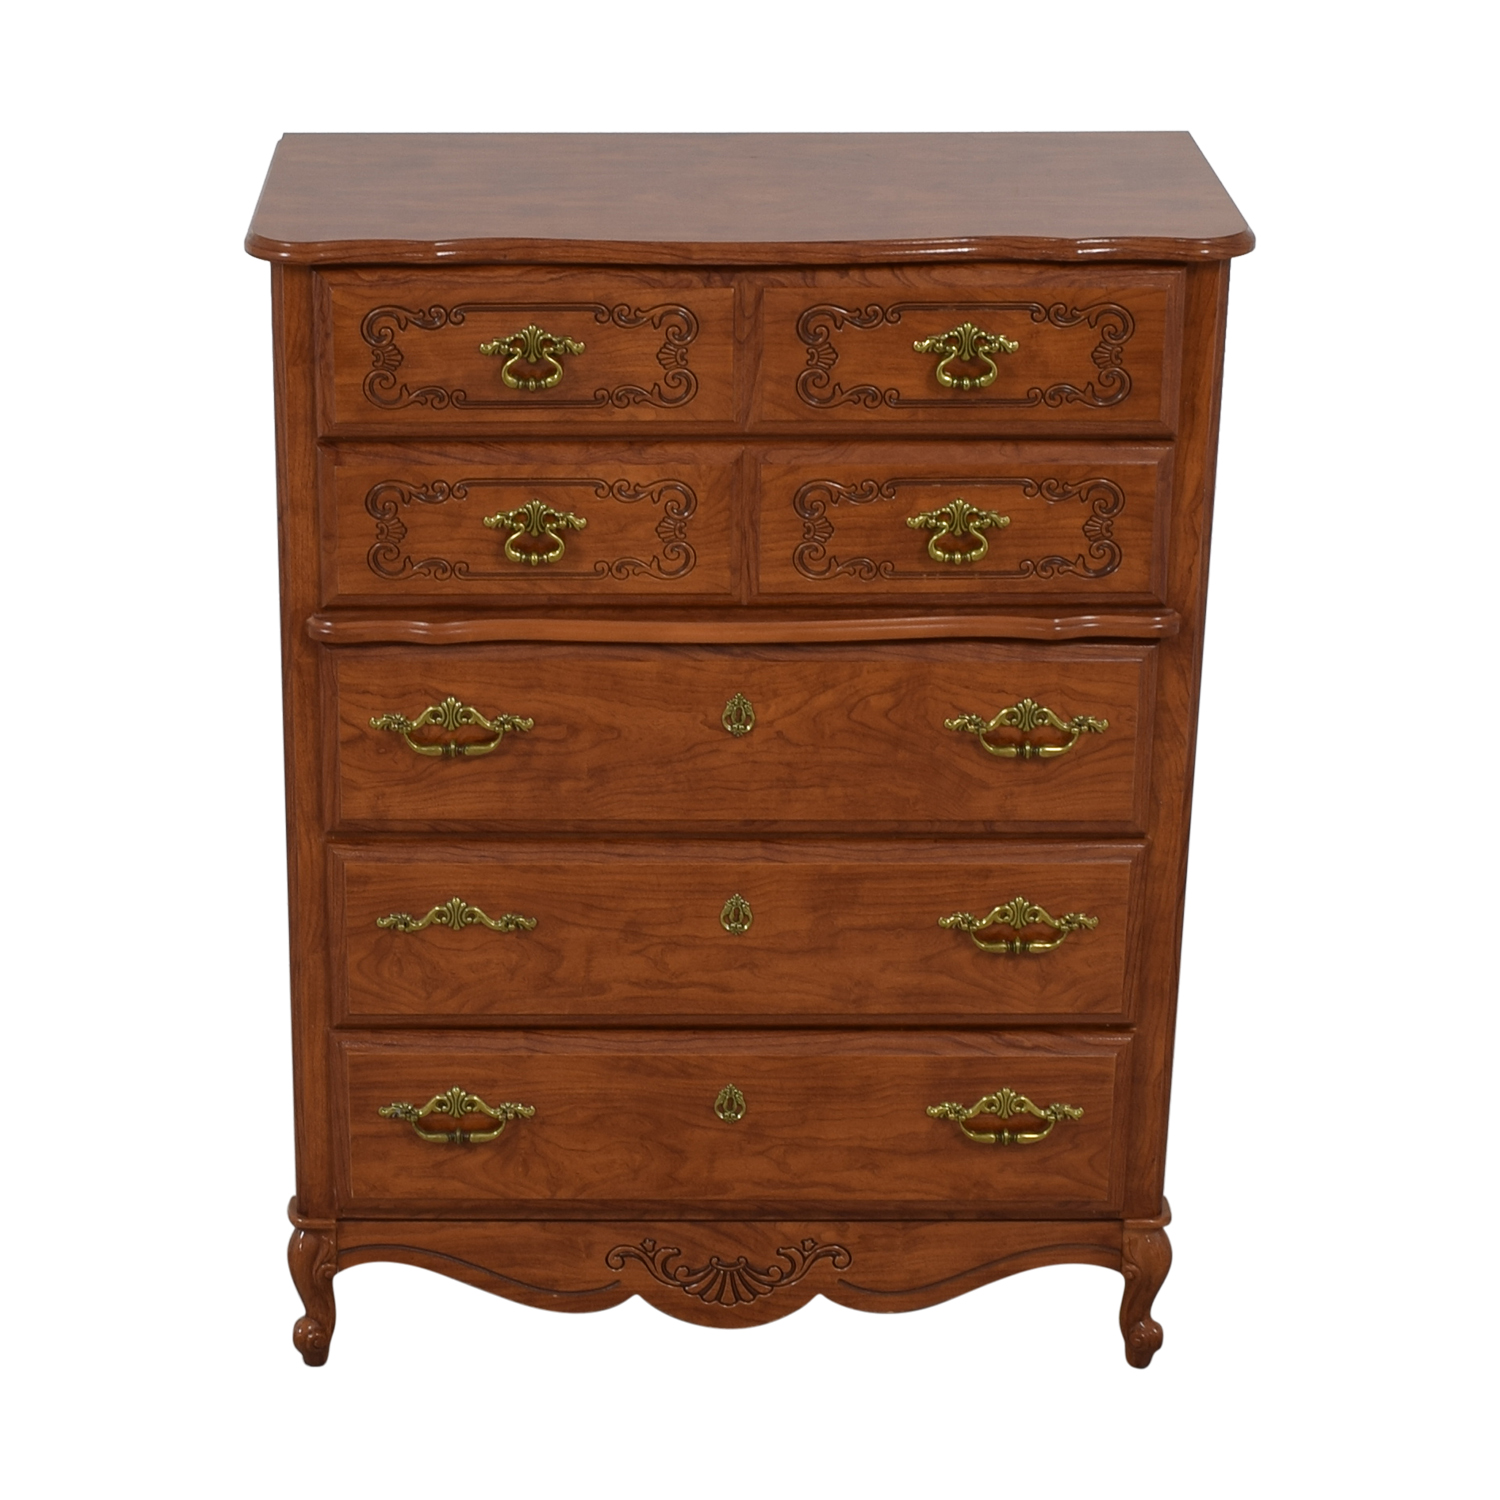 Wood Five-Drawer Tall Chest of Drawers nj